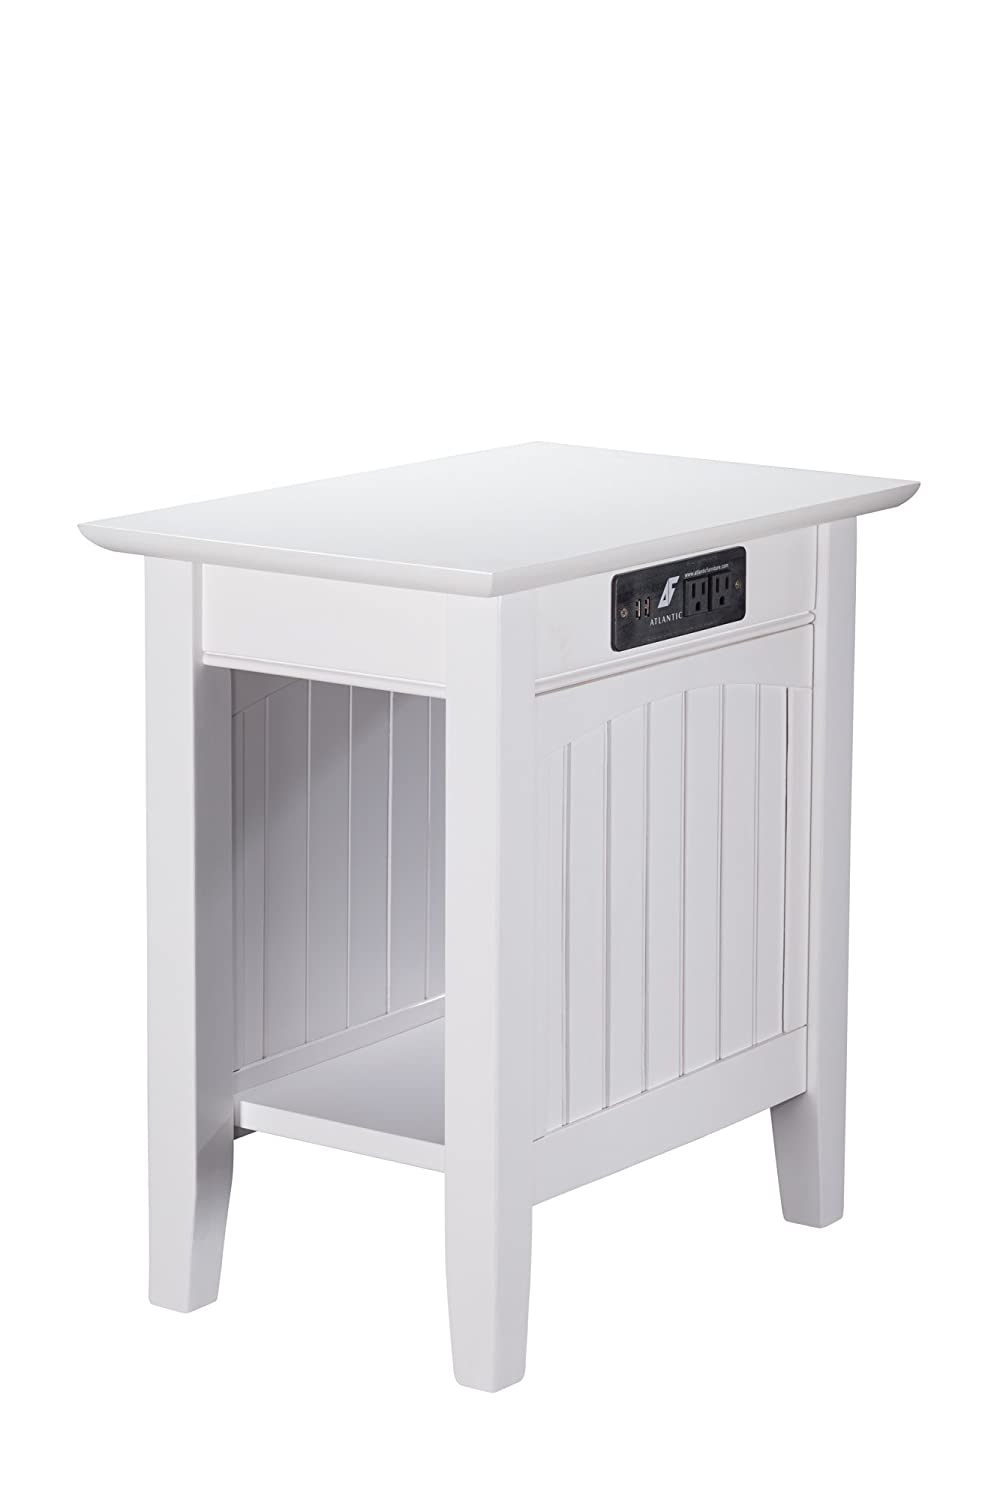 Atlantic Furniture AH13312 Nantucket Chair Side Table with Charging Station, White